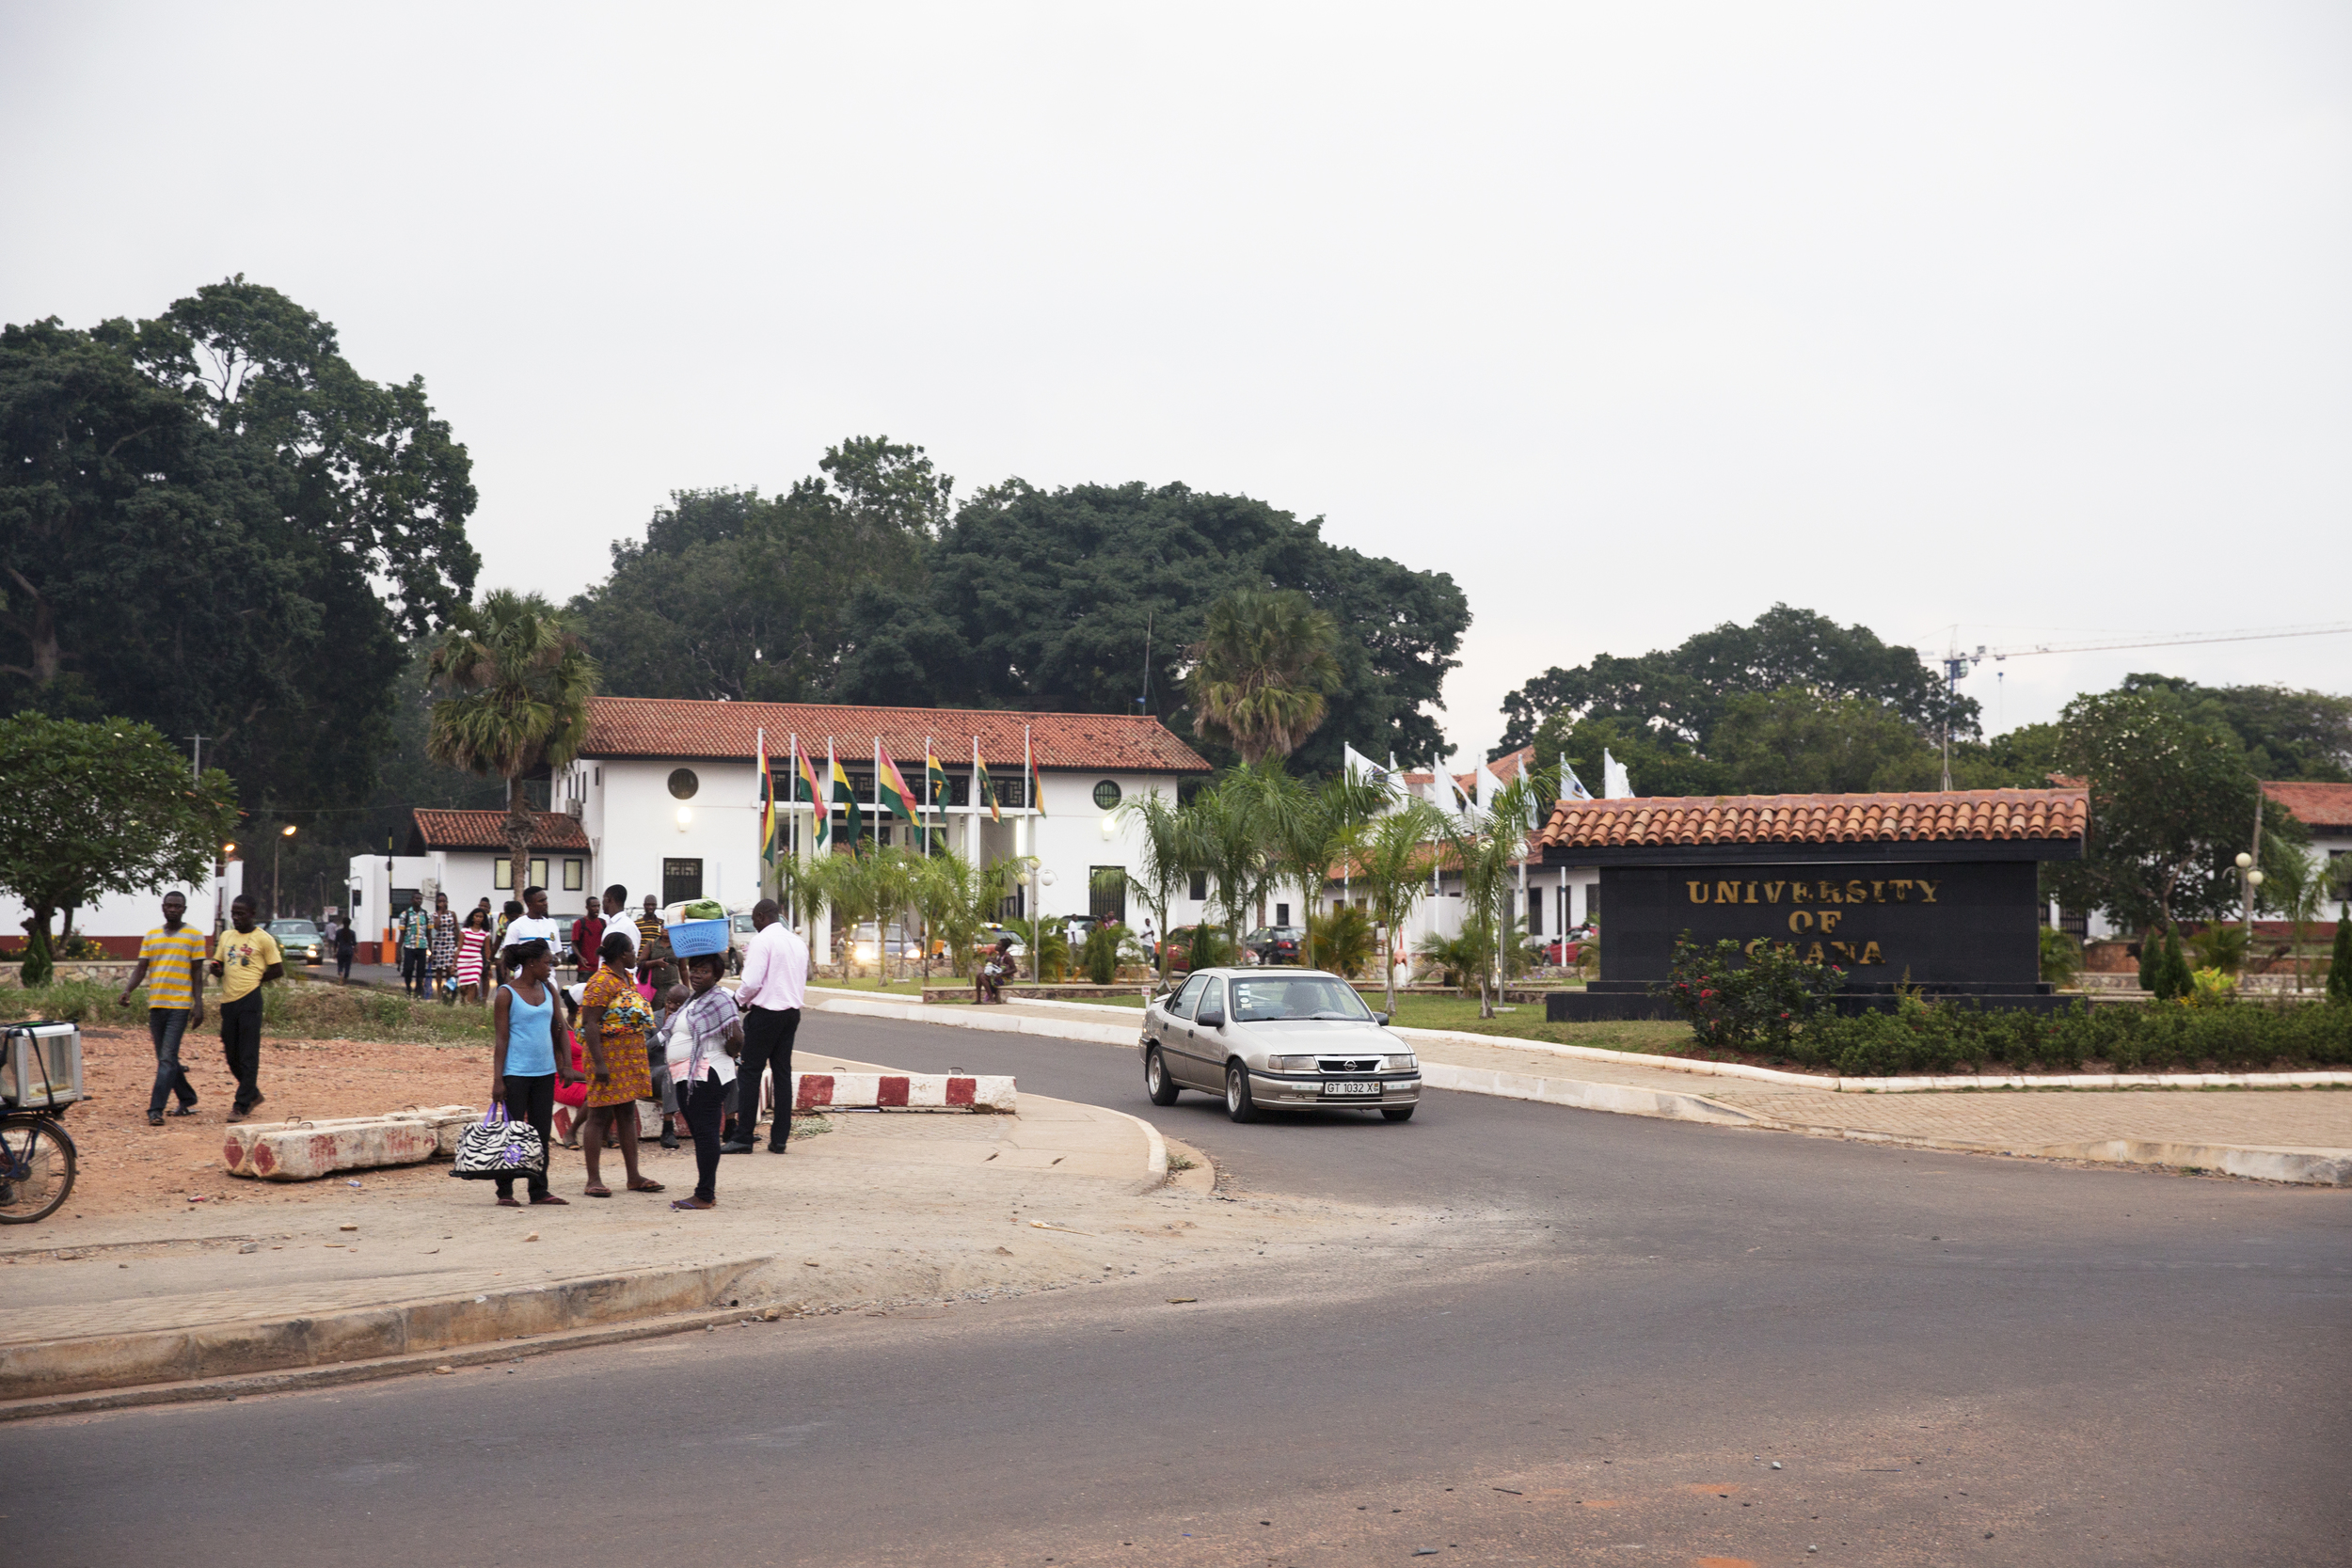 An exterior view of the University of Ghana.